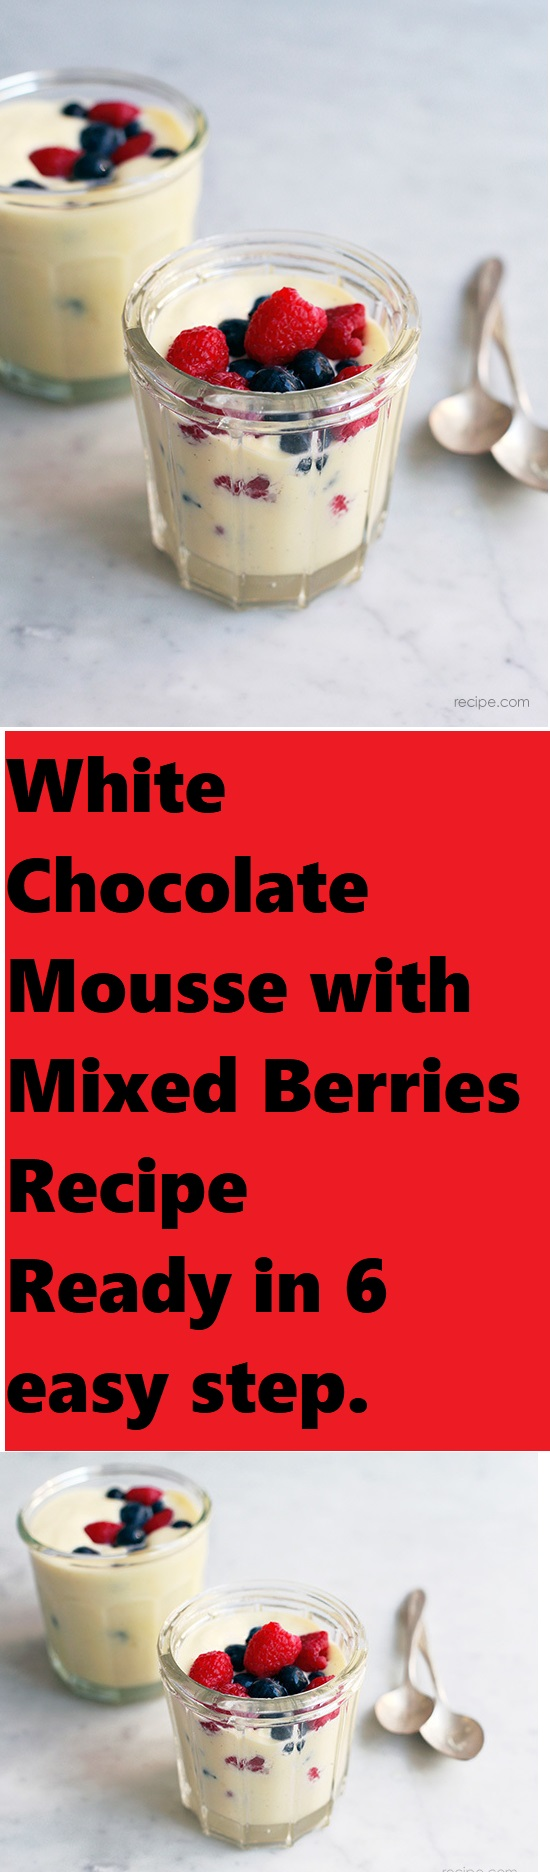 White Chocolate Mousse With Mixed Berries Recipe 2